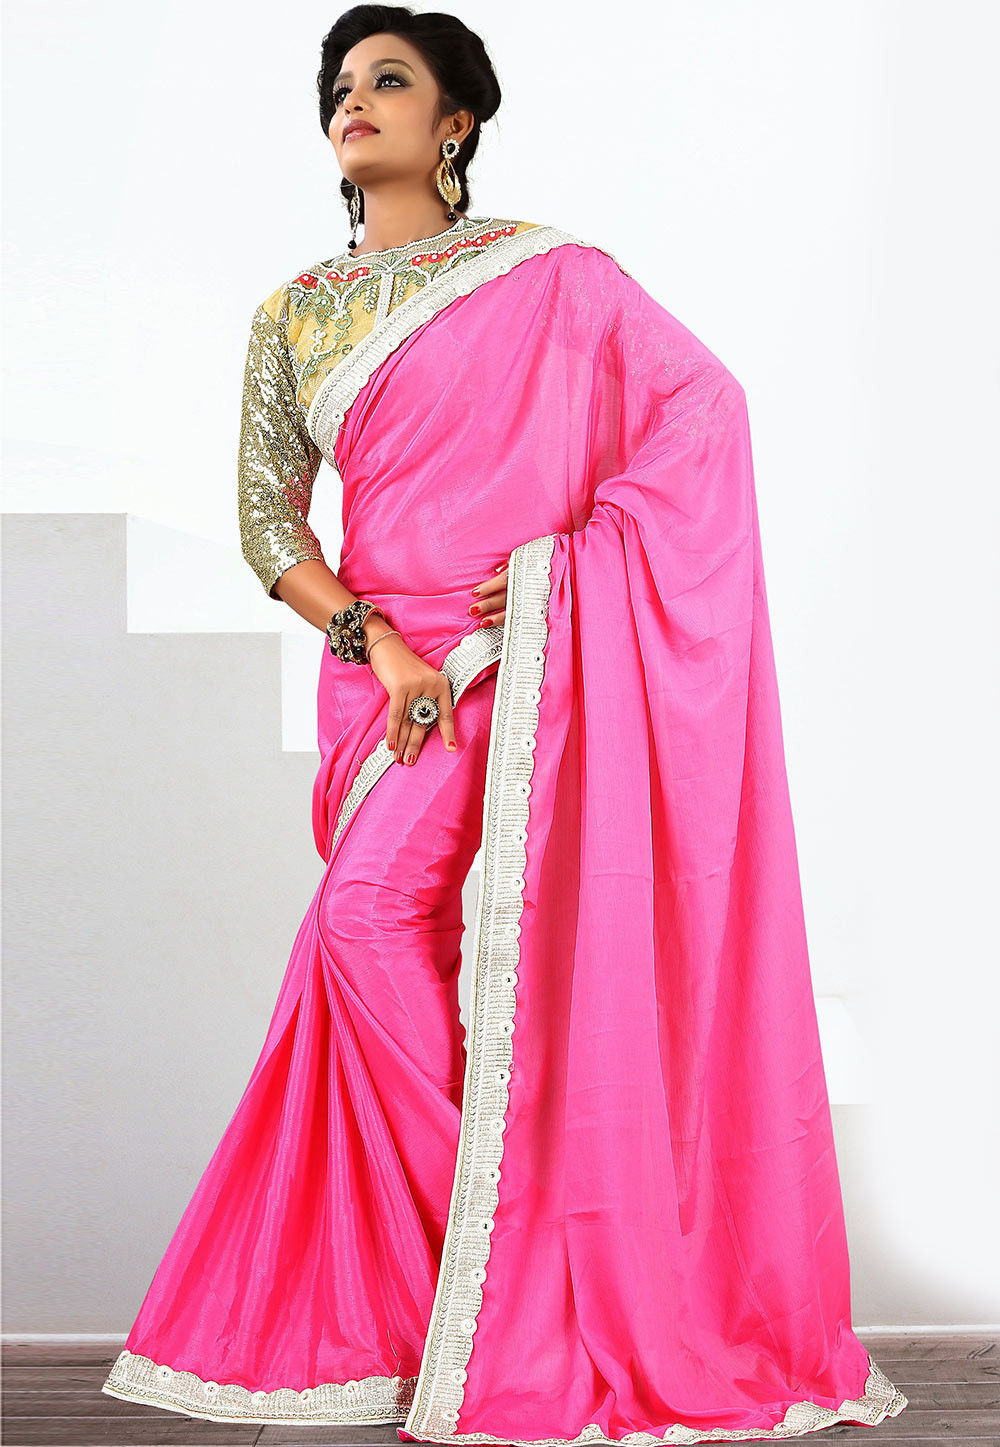 Lace Border Satin Chiffon Saree in Pink